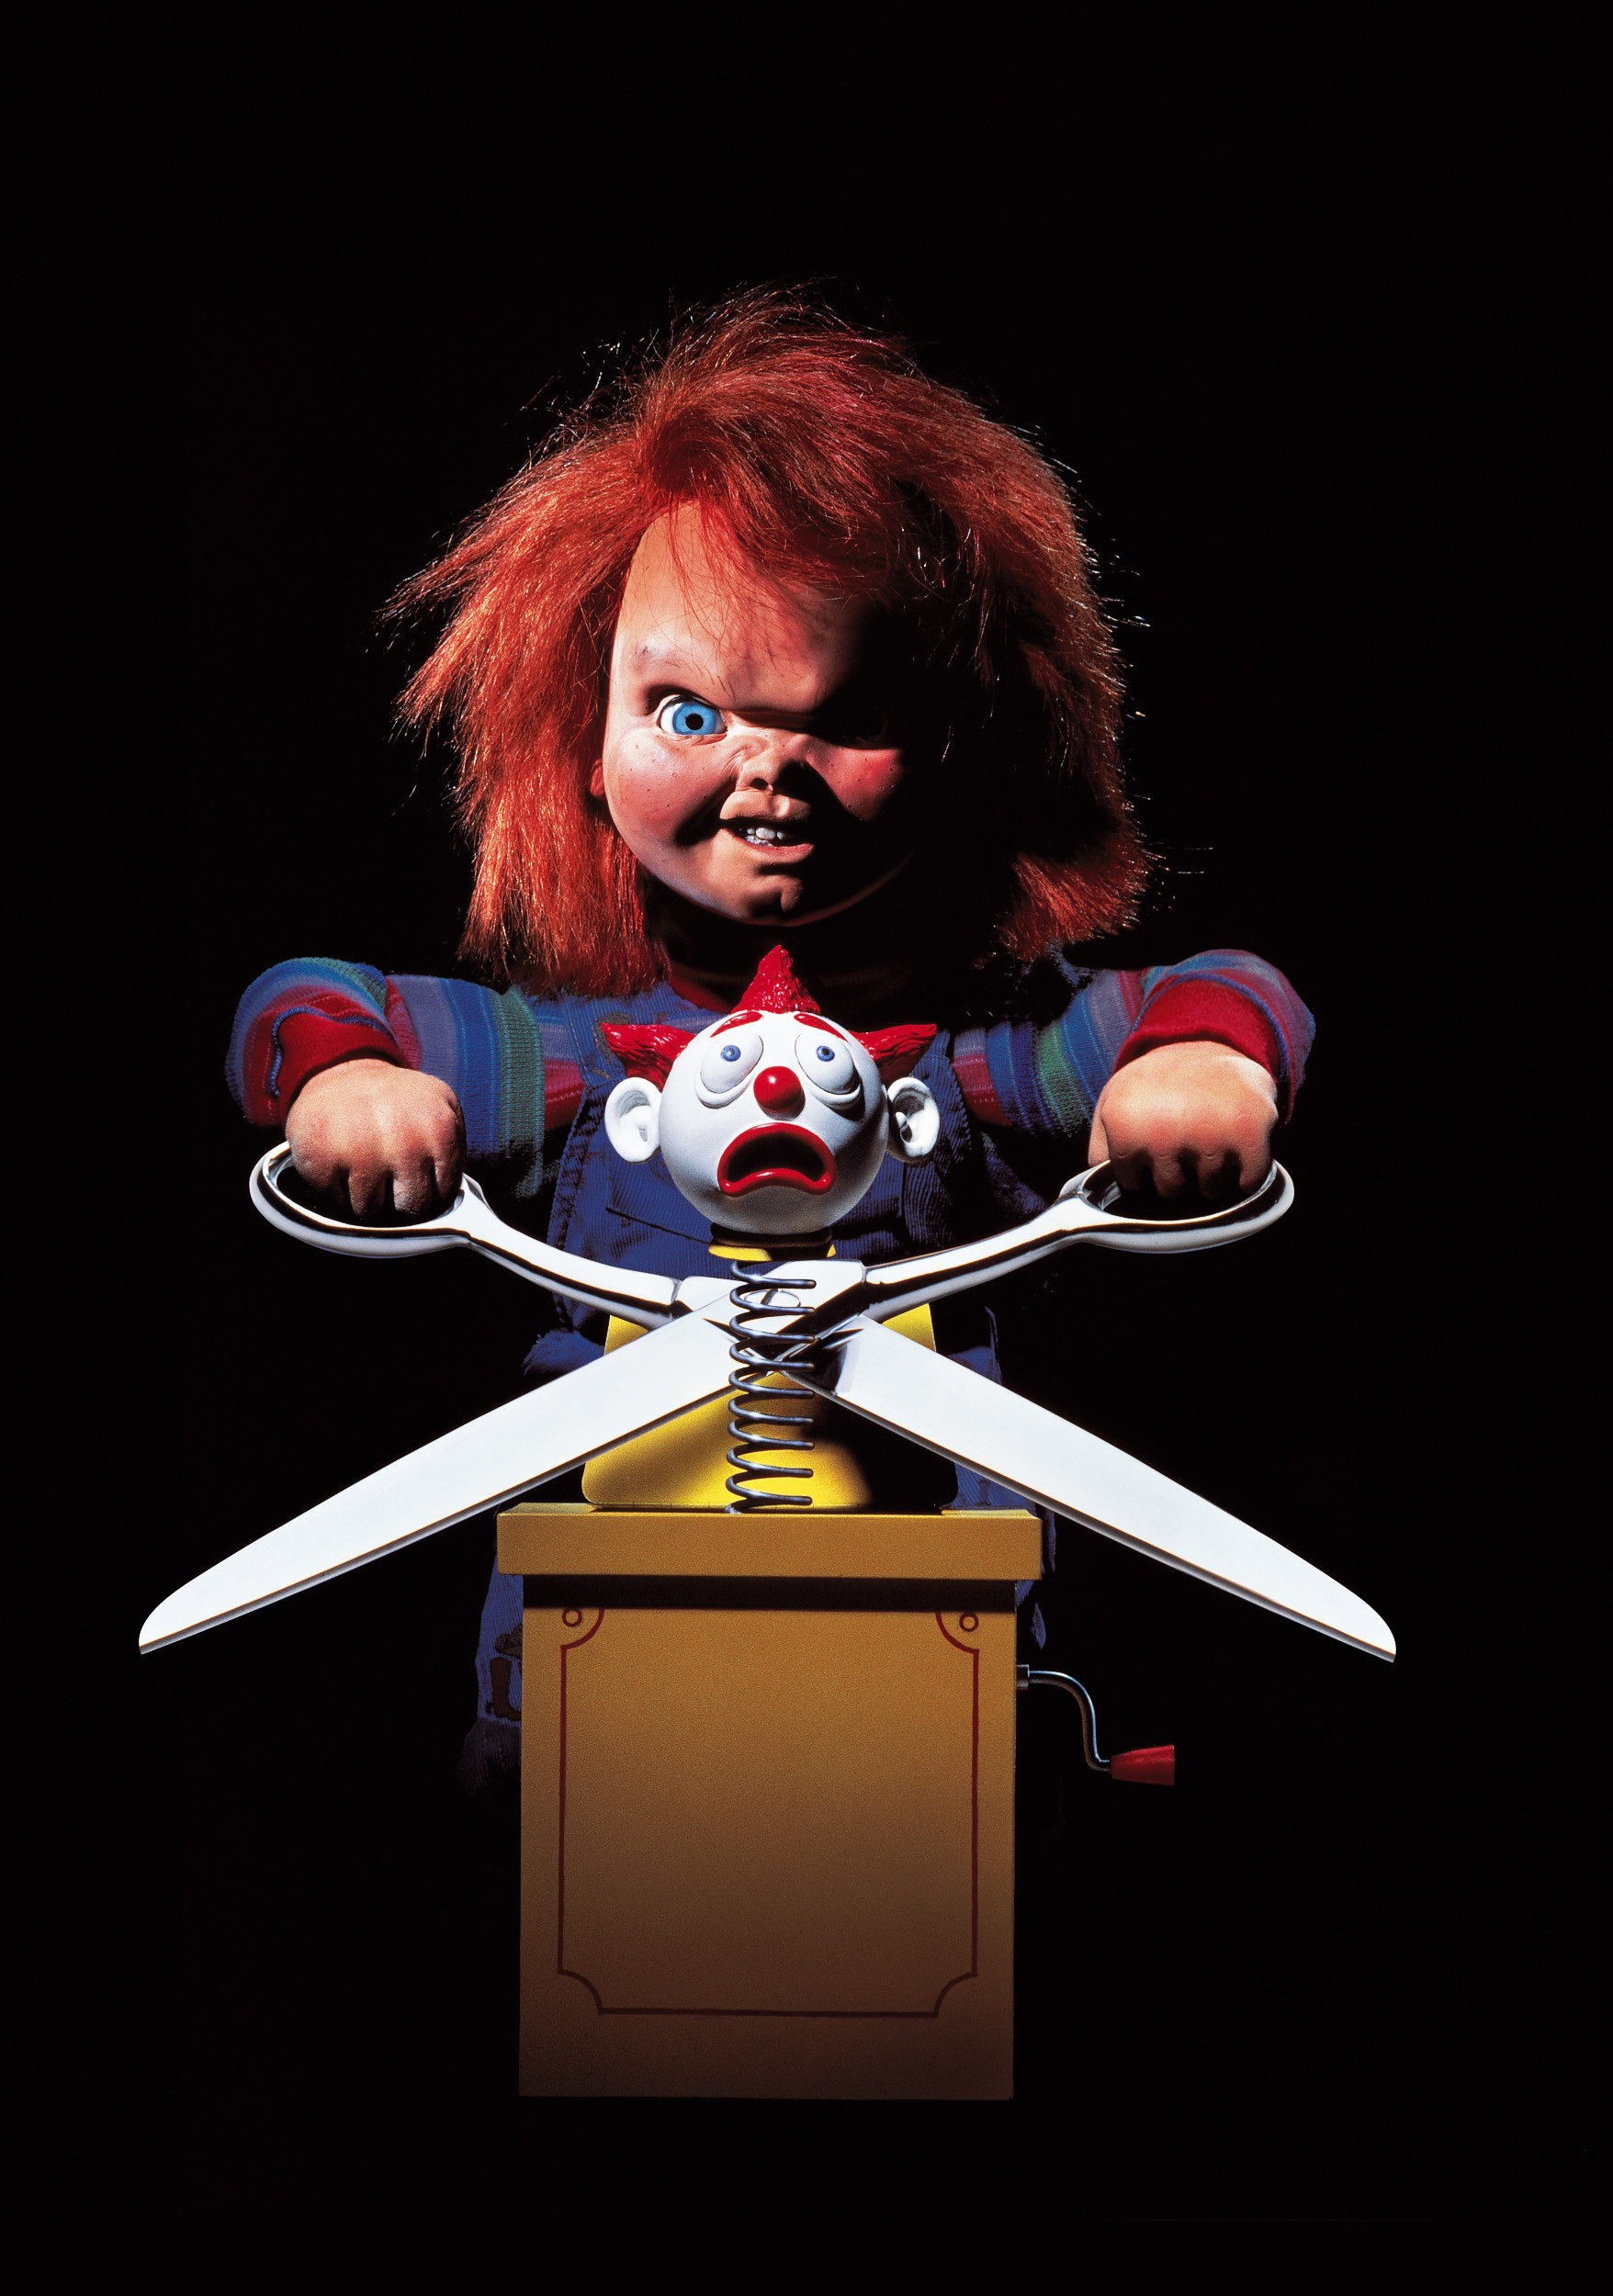 Chucky-childs-play-25672971-1756-2500.png (1756×